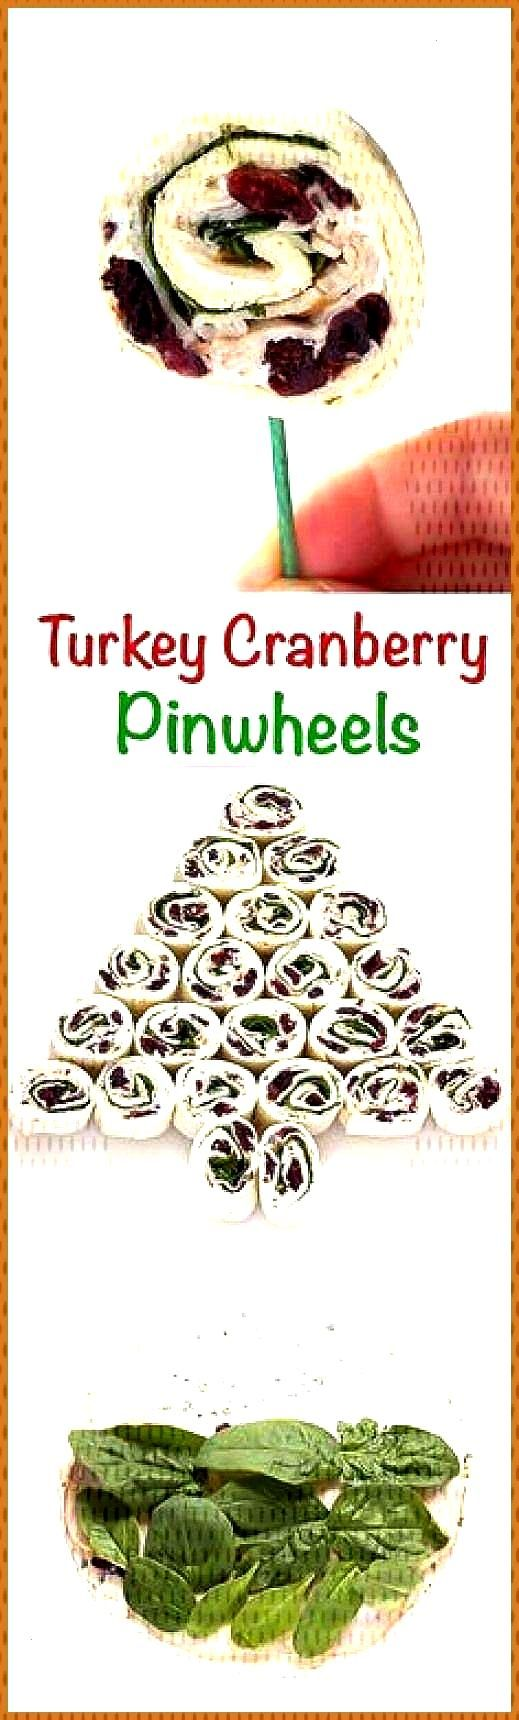 Turkey Cranberry Pinwheels – Seasoned cream cheese dried cranberries turkey and … appetierz for